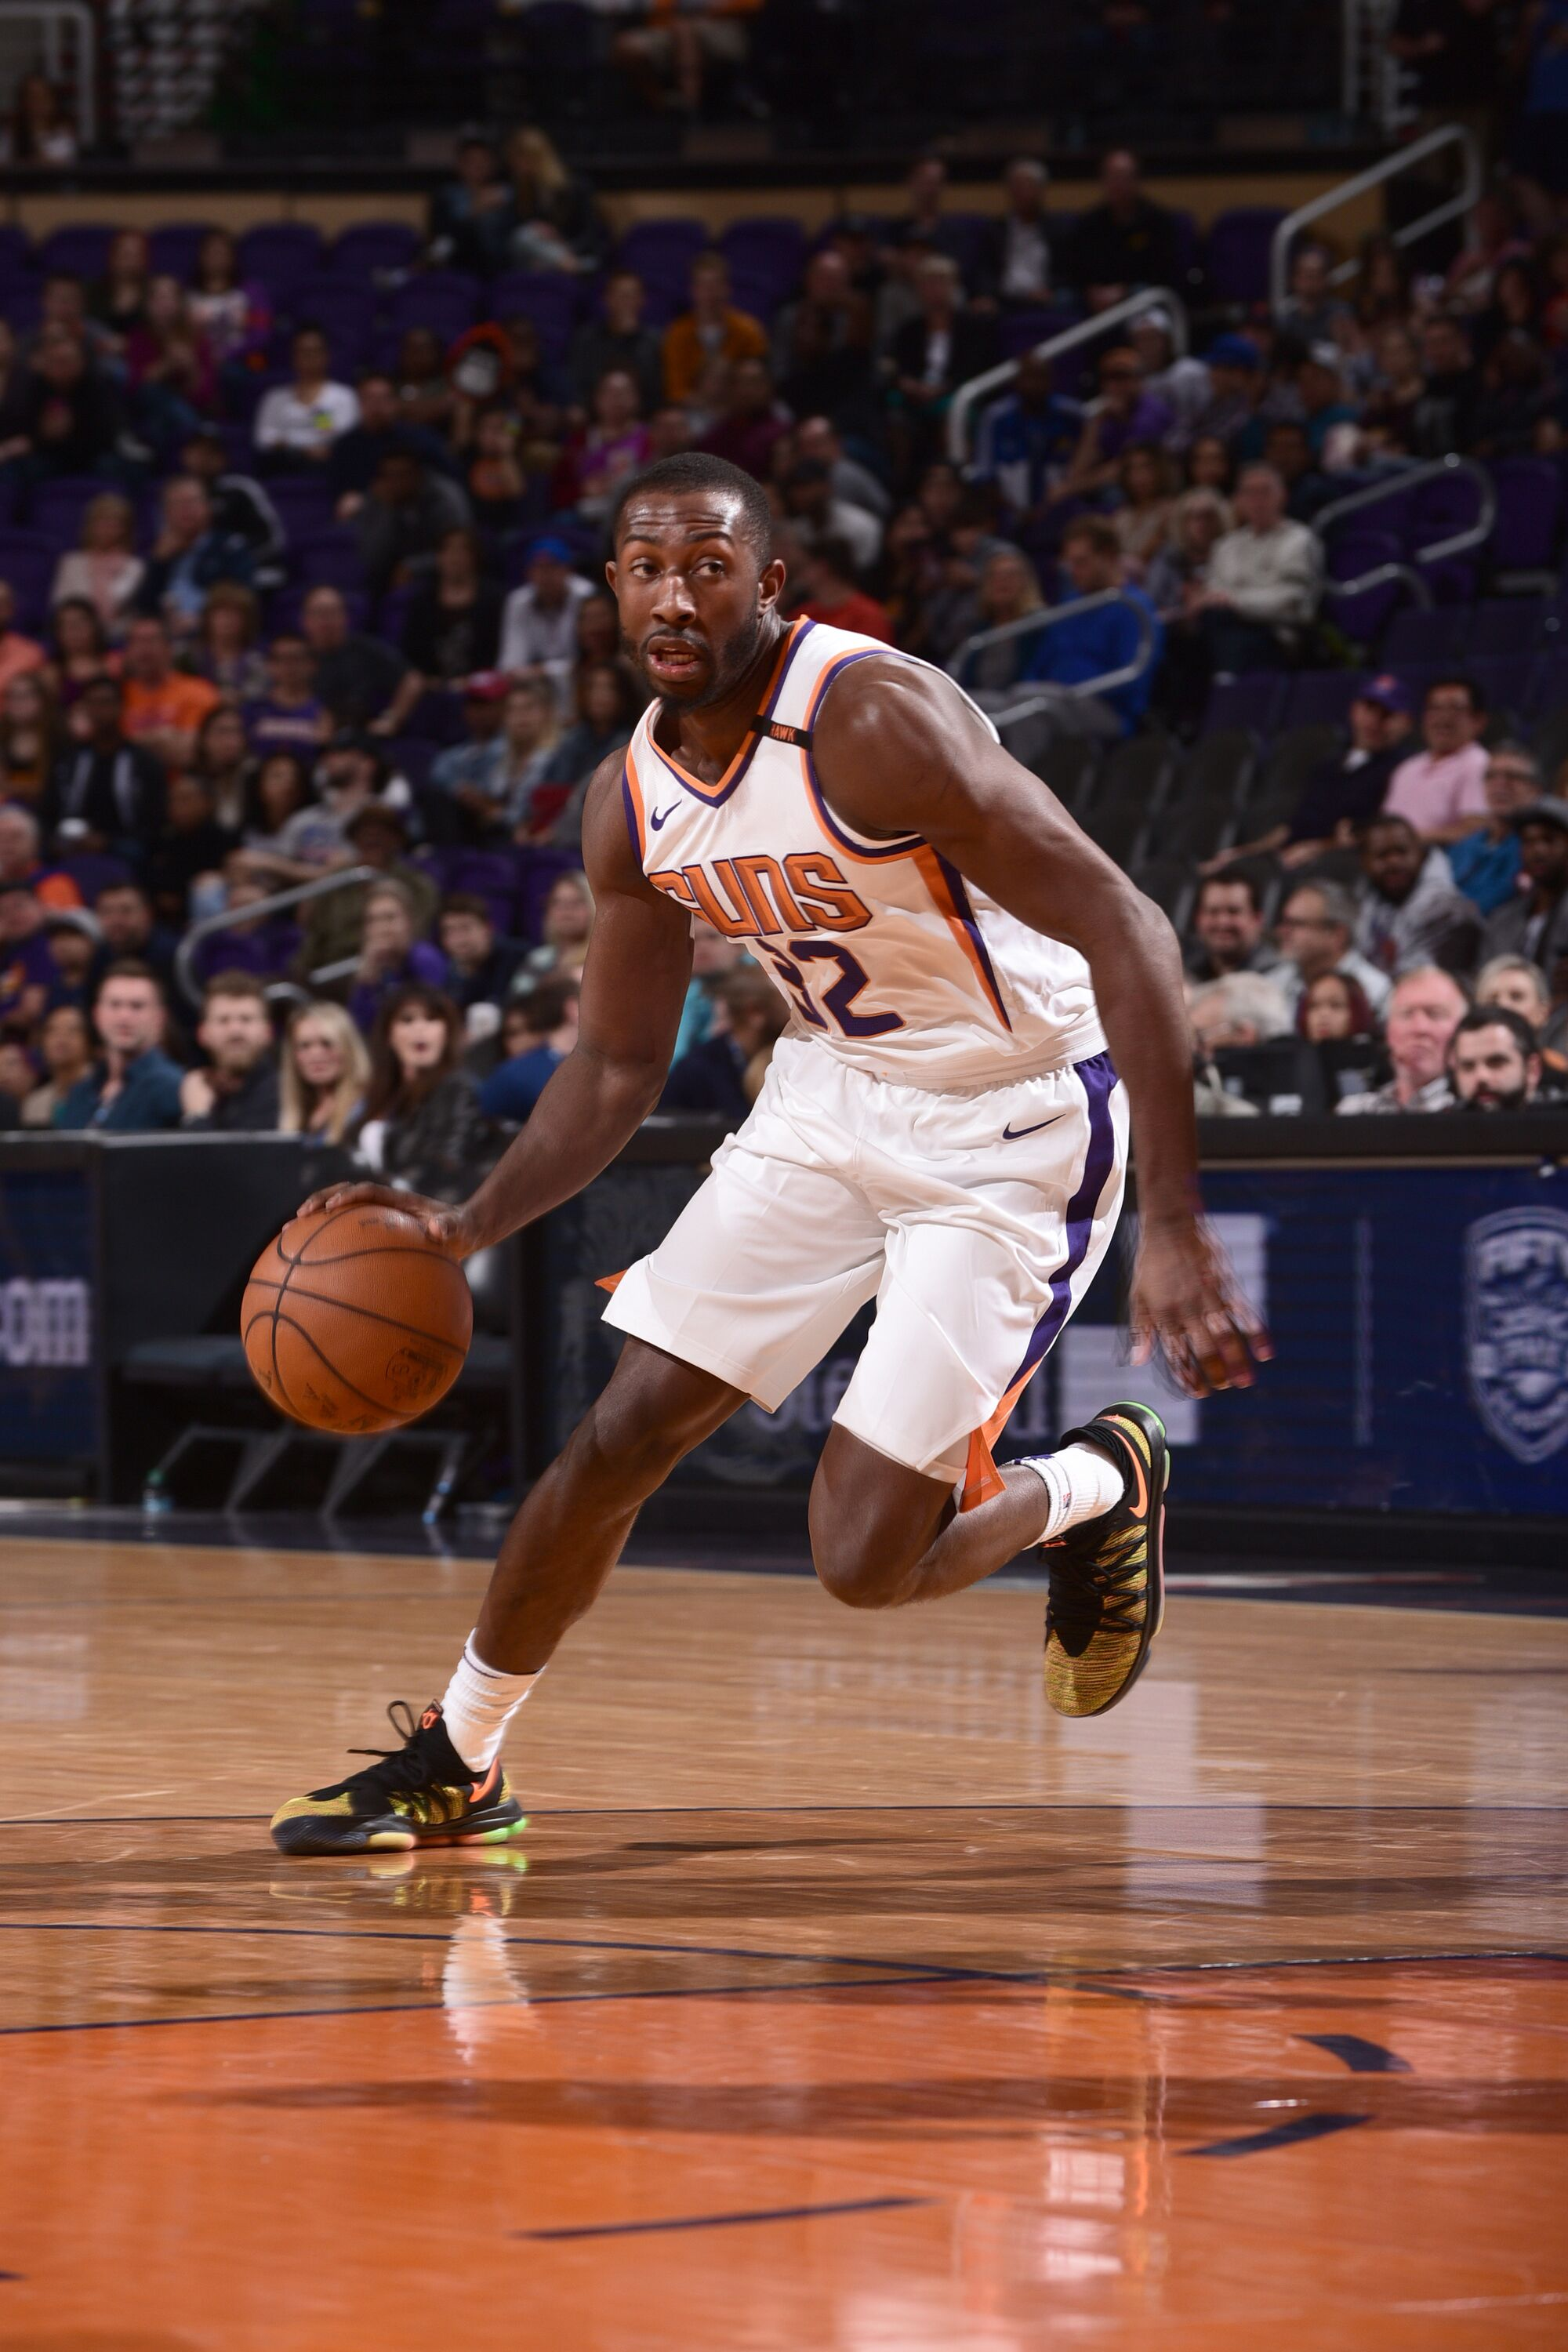 905020460-indiana-pacers-v-phoenix-suns.jpg